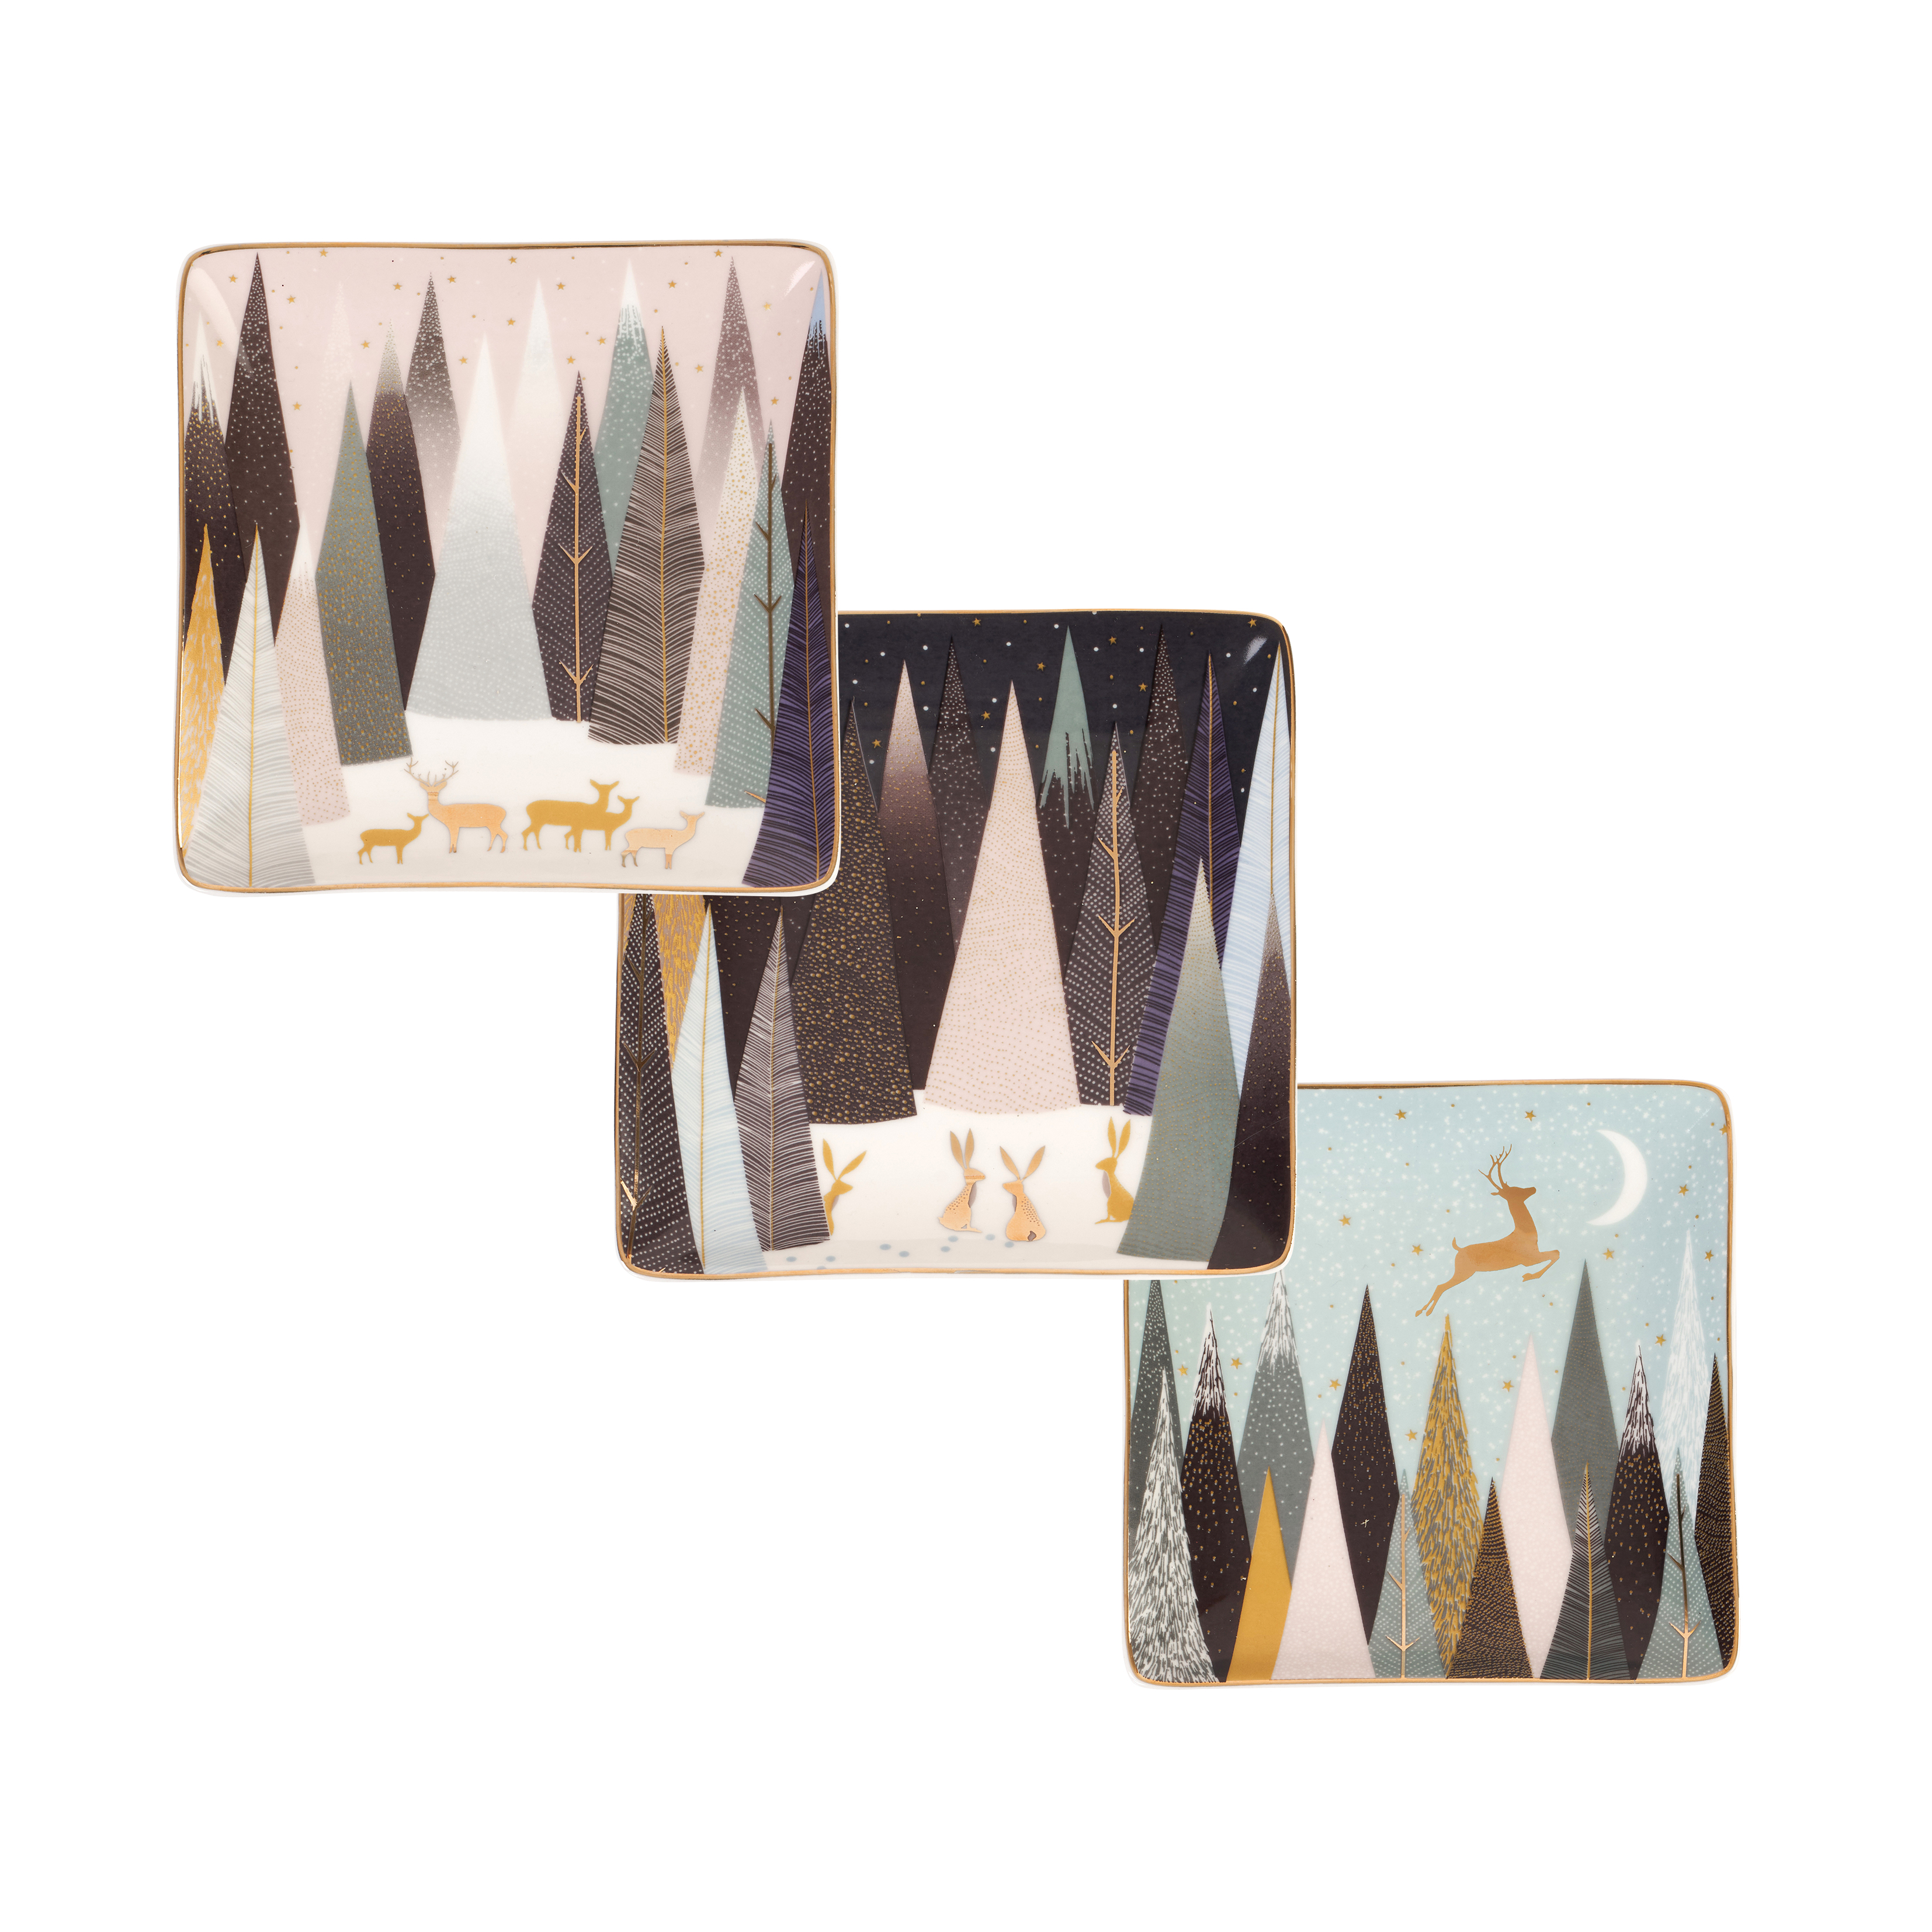 Sara Miller London for Portmeirion Frosted Pines Set of 3 Square Trays 4.5 Inch image number 0